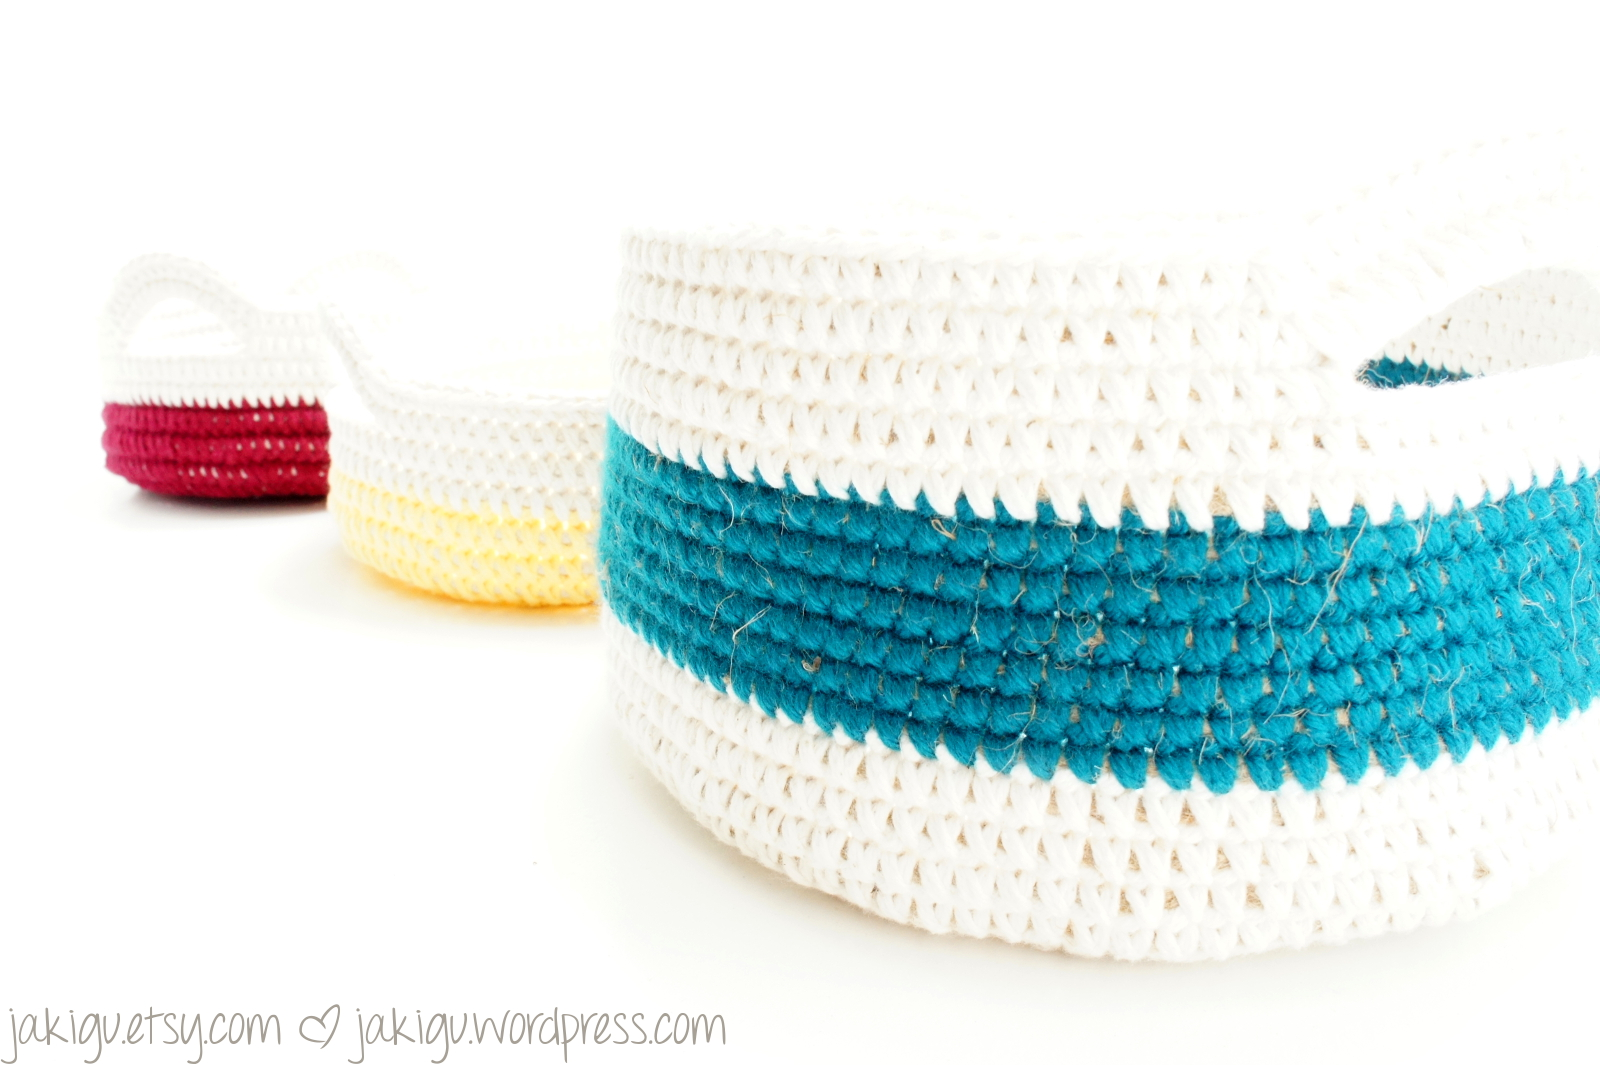 coiled crochet baskets